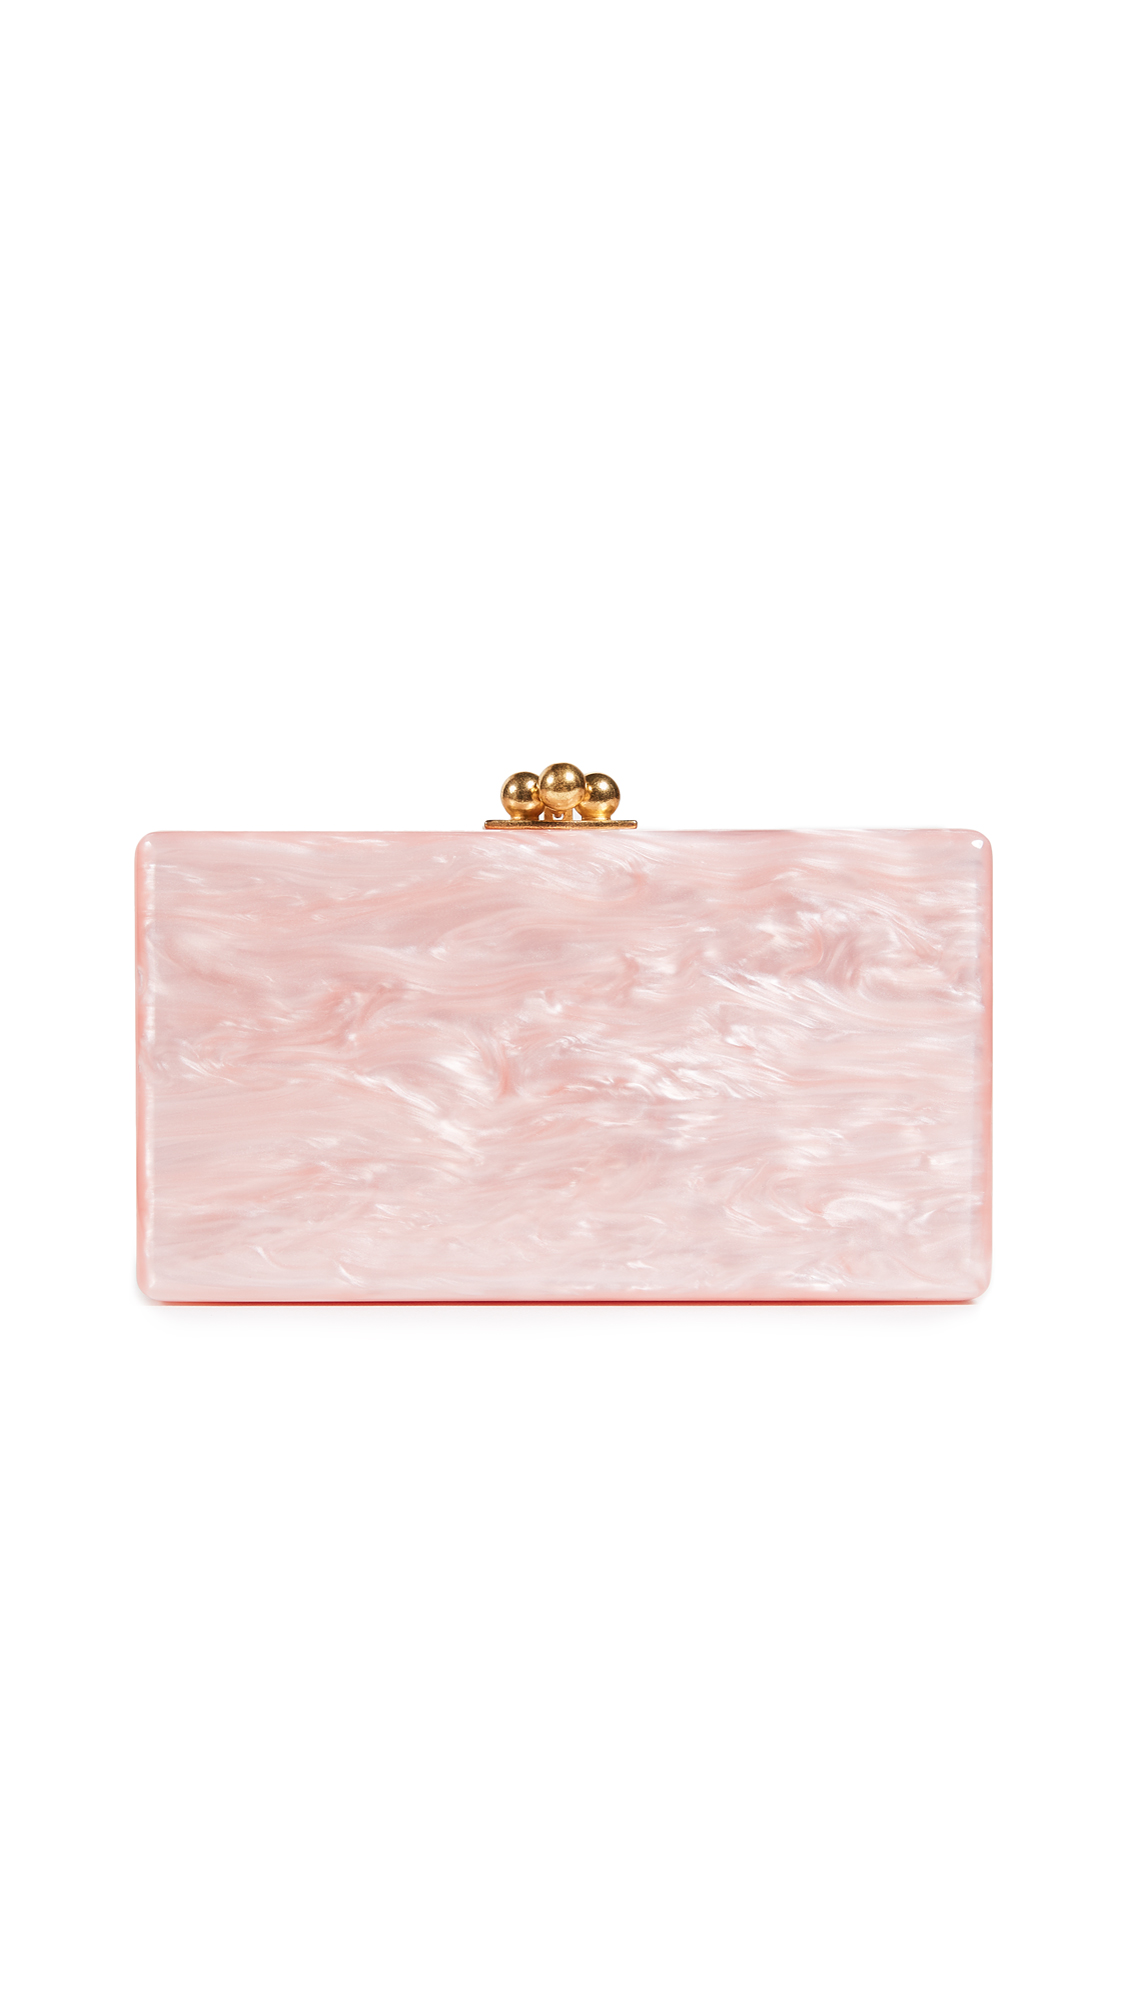 Edie Parker Jean Solid Clutch - Rose Quartz